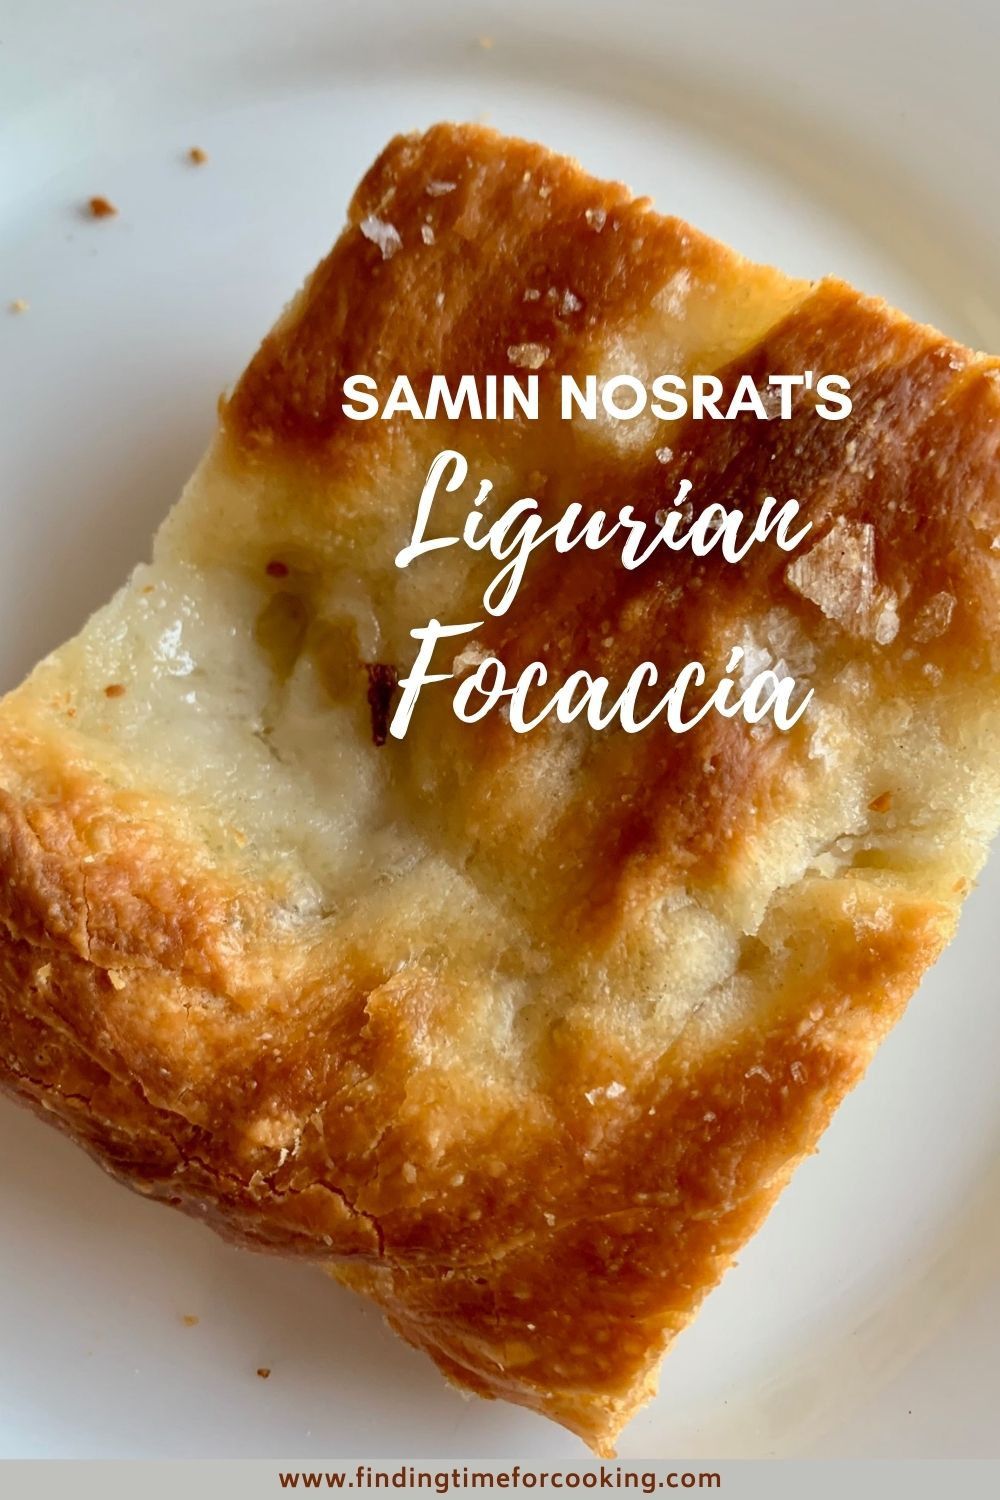 How to Make Ligurian Focaccia | Ever since watching Samin Nosrat make it on Netflix, I've been obsessed with making this salty, golden, crunchy amazing focaccia bread. It's not difficult, just requires lots of rising time, and makes the best bread ever! Step-by-step instructions on making Ligurian Focaccia from Salt, Fat, Acid, Heat. #focaccia #breadrecipe